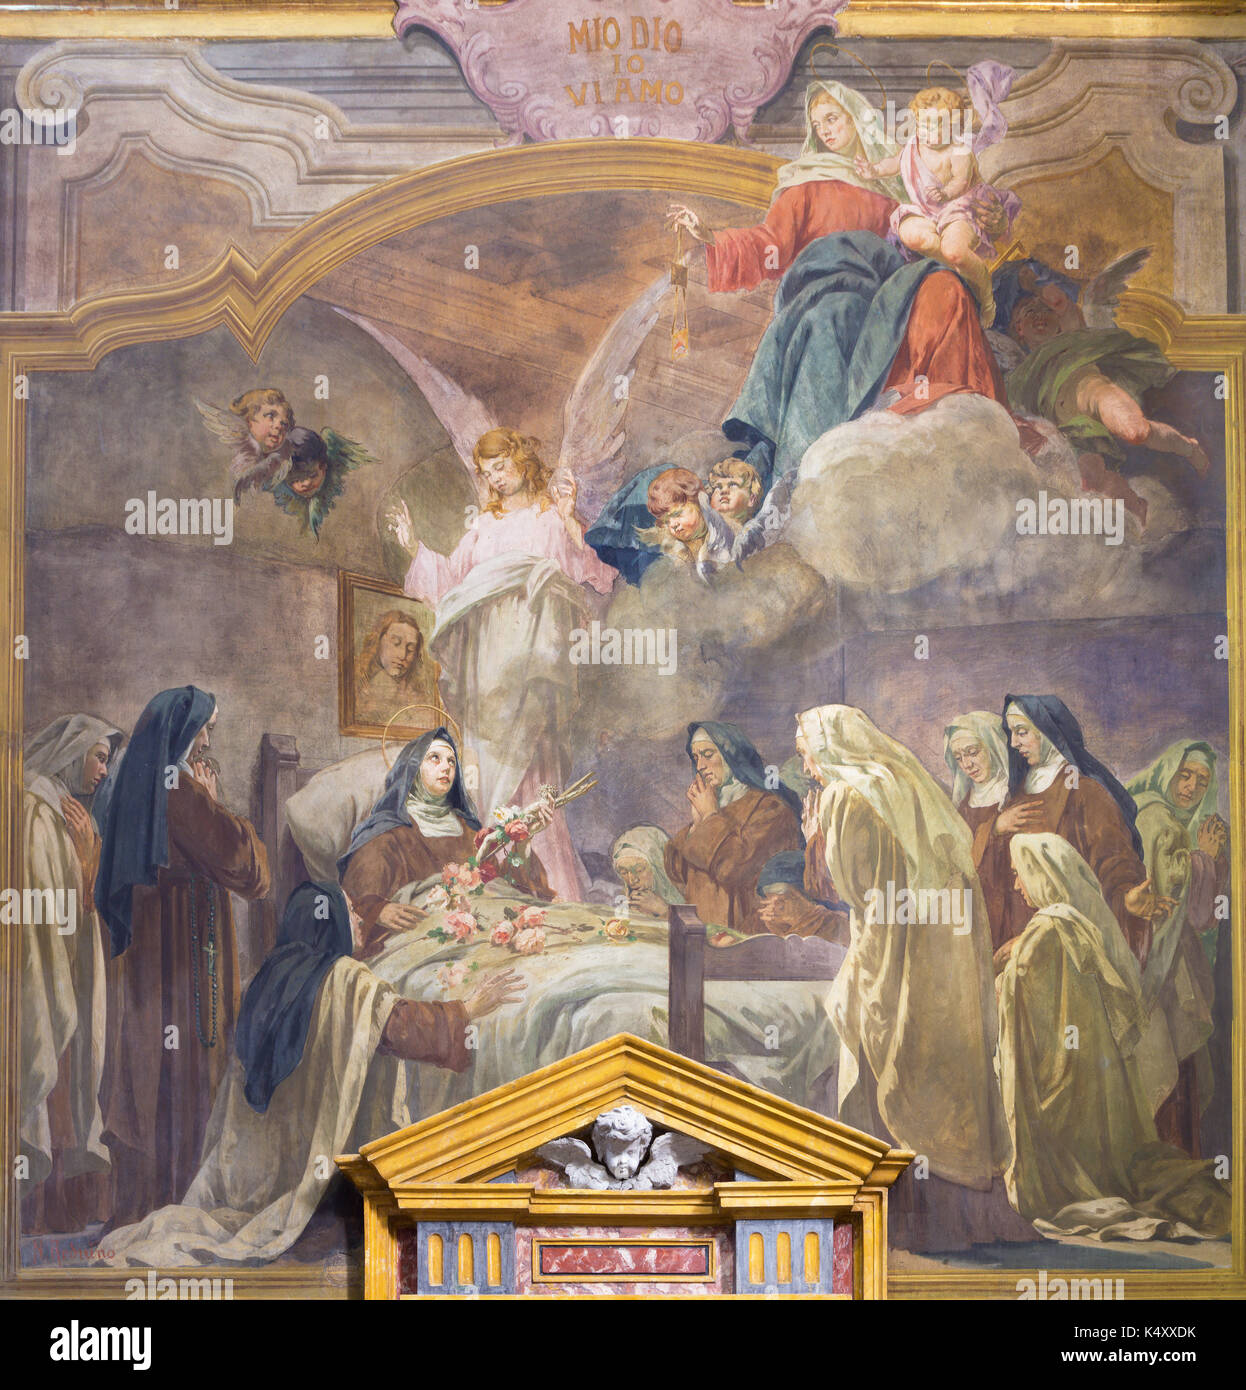 TURIN, ITALY - MARCH 13, 2017: The fresco The death of St. Theresia in church Chiesa di Santa Teresa by Rodolfo Morgari  (1827 – 1909). - Stock Image